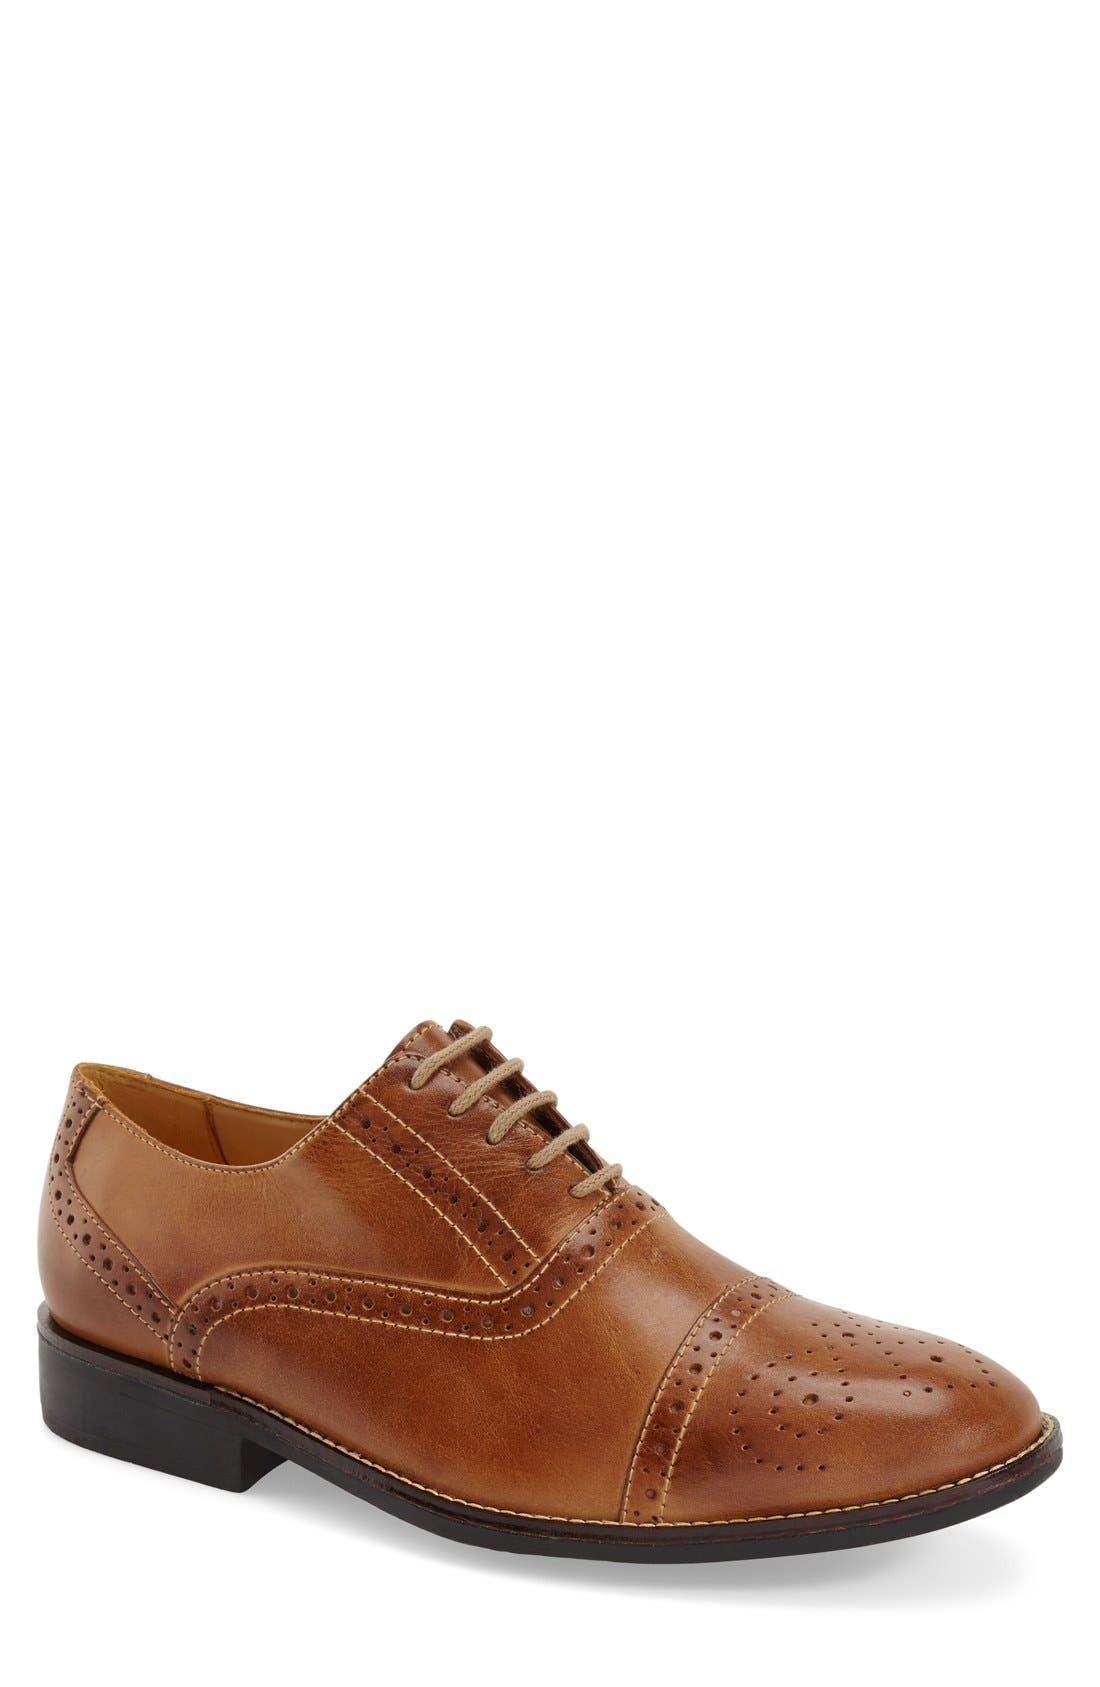 'Barrett' Cap Toe Oxford,                             Main thumbnail 1, color,                             Tan